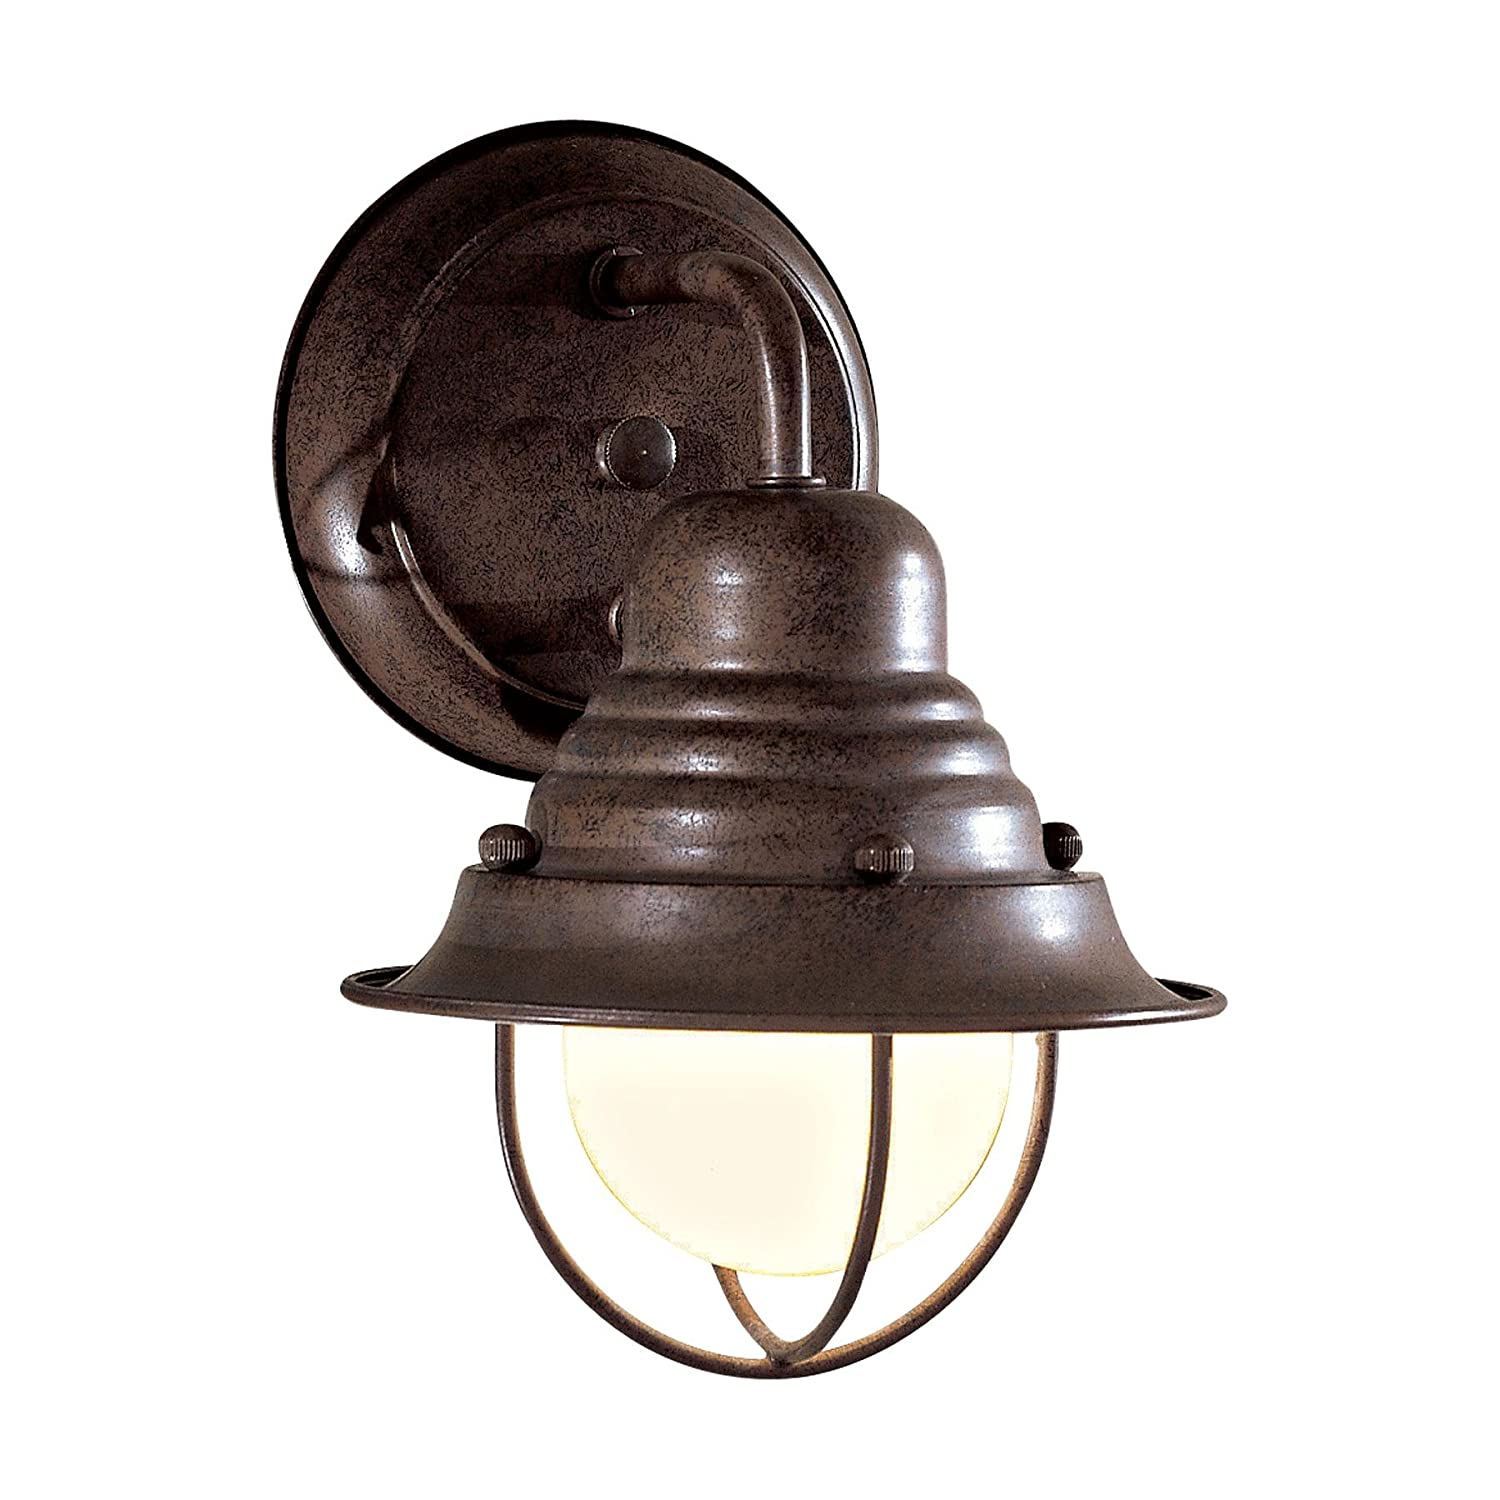 Minka Lavery 71166 91 Wyndmere Outdoor Wall Mount, Antique Bronze   Wall  Porch Lights   Amazon.com